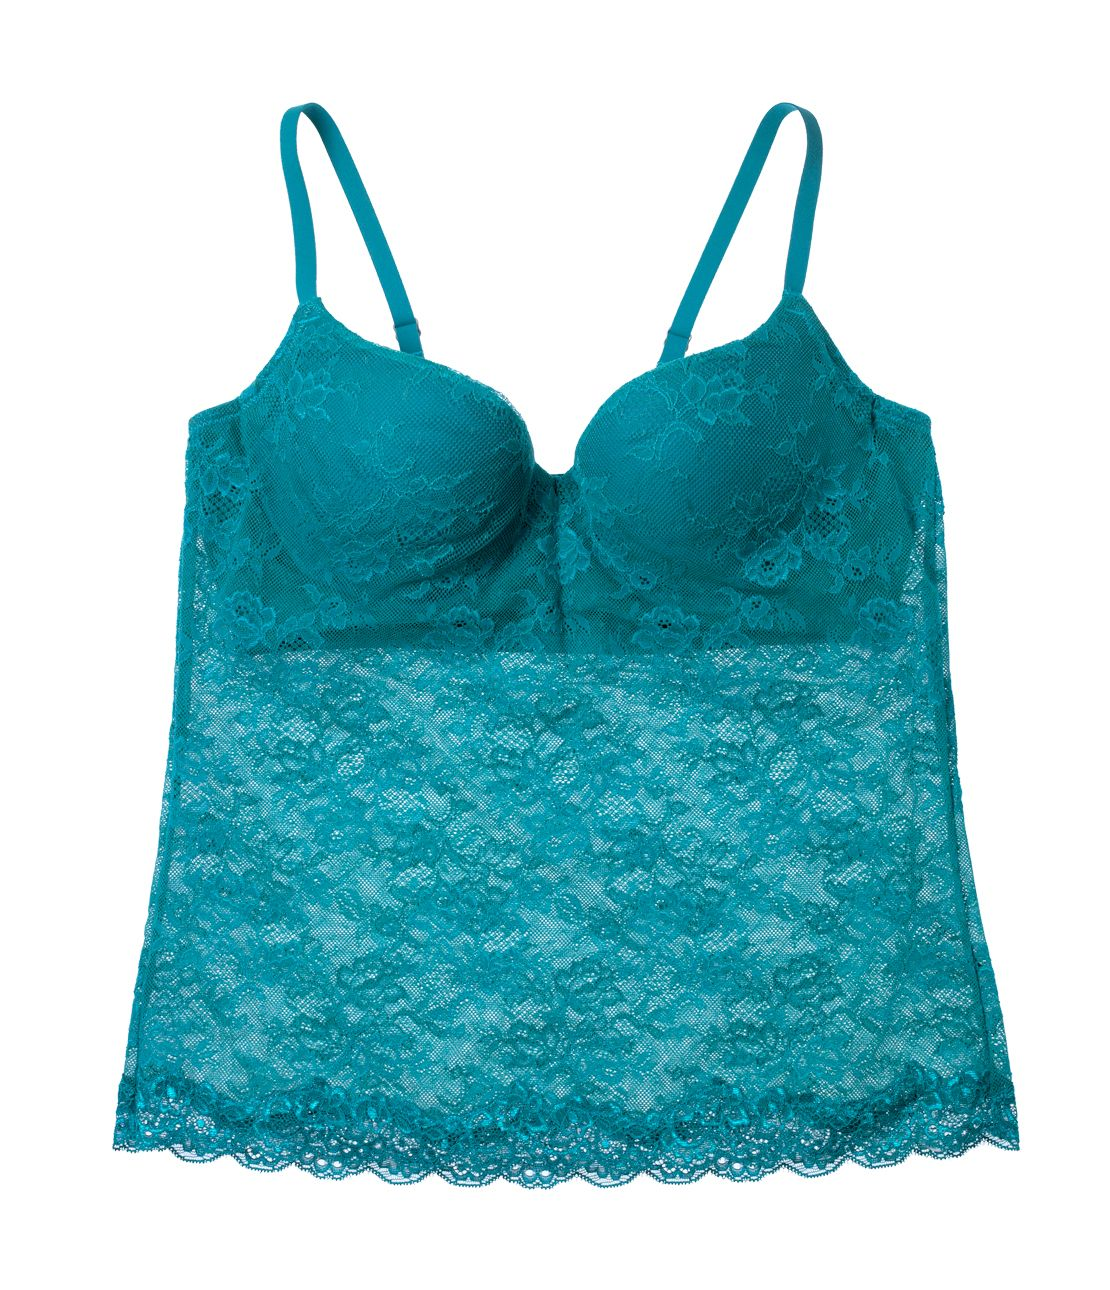 Work Lacy Bra Cami